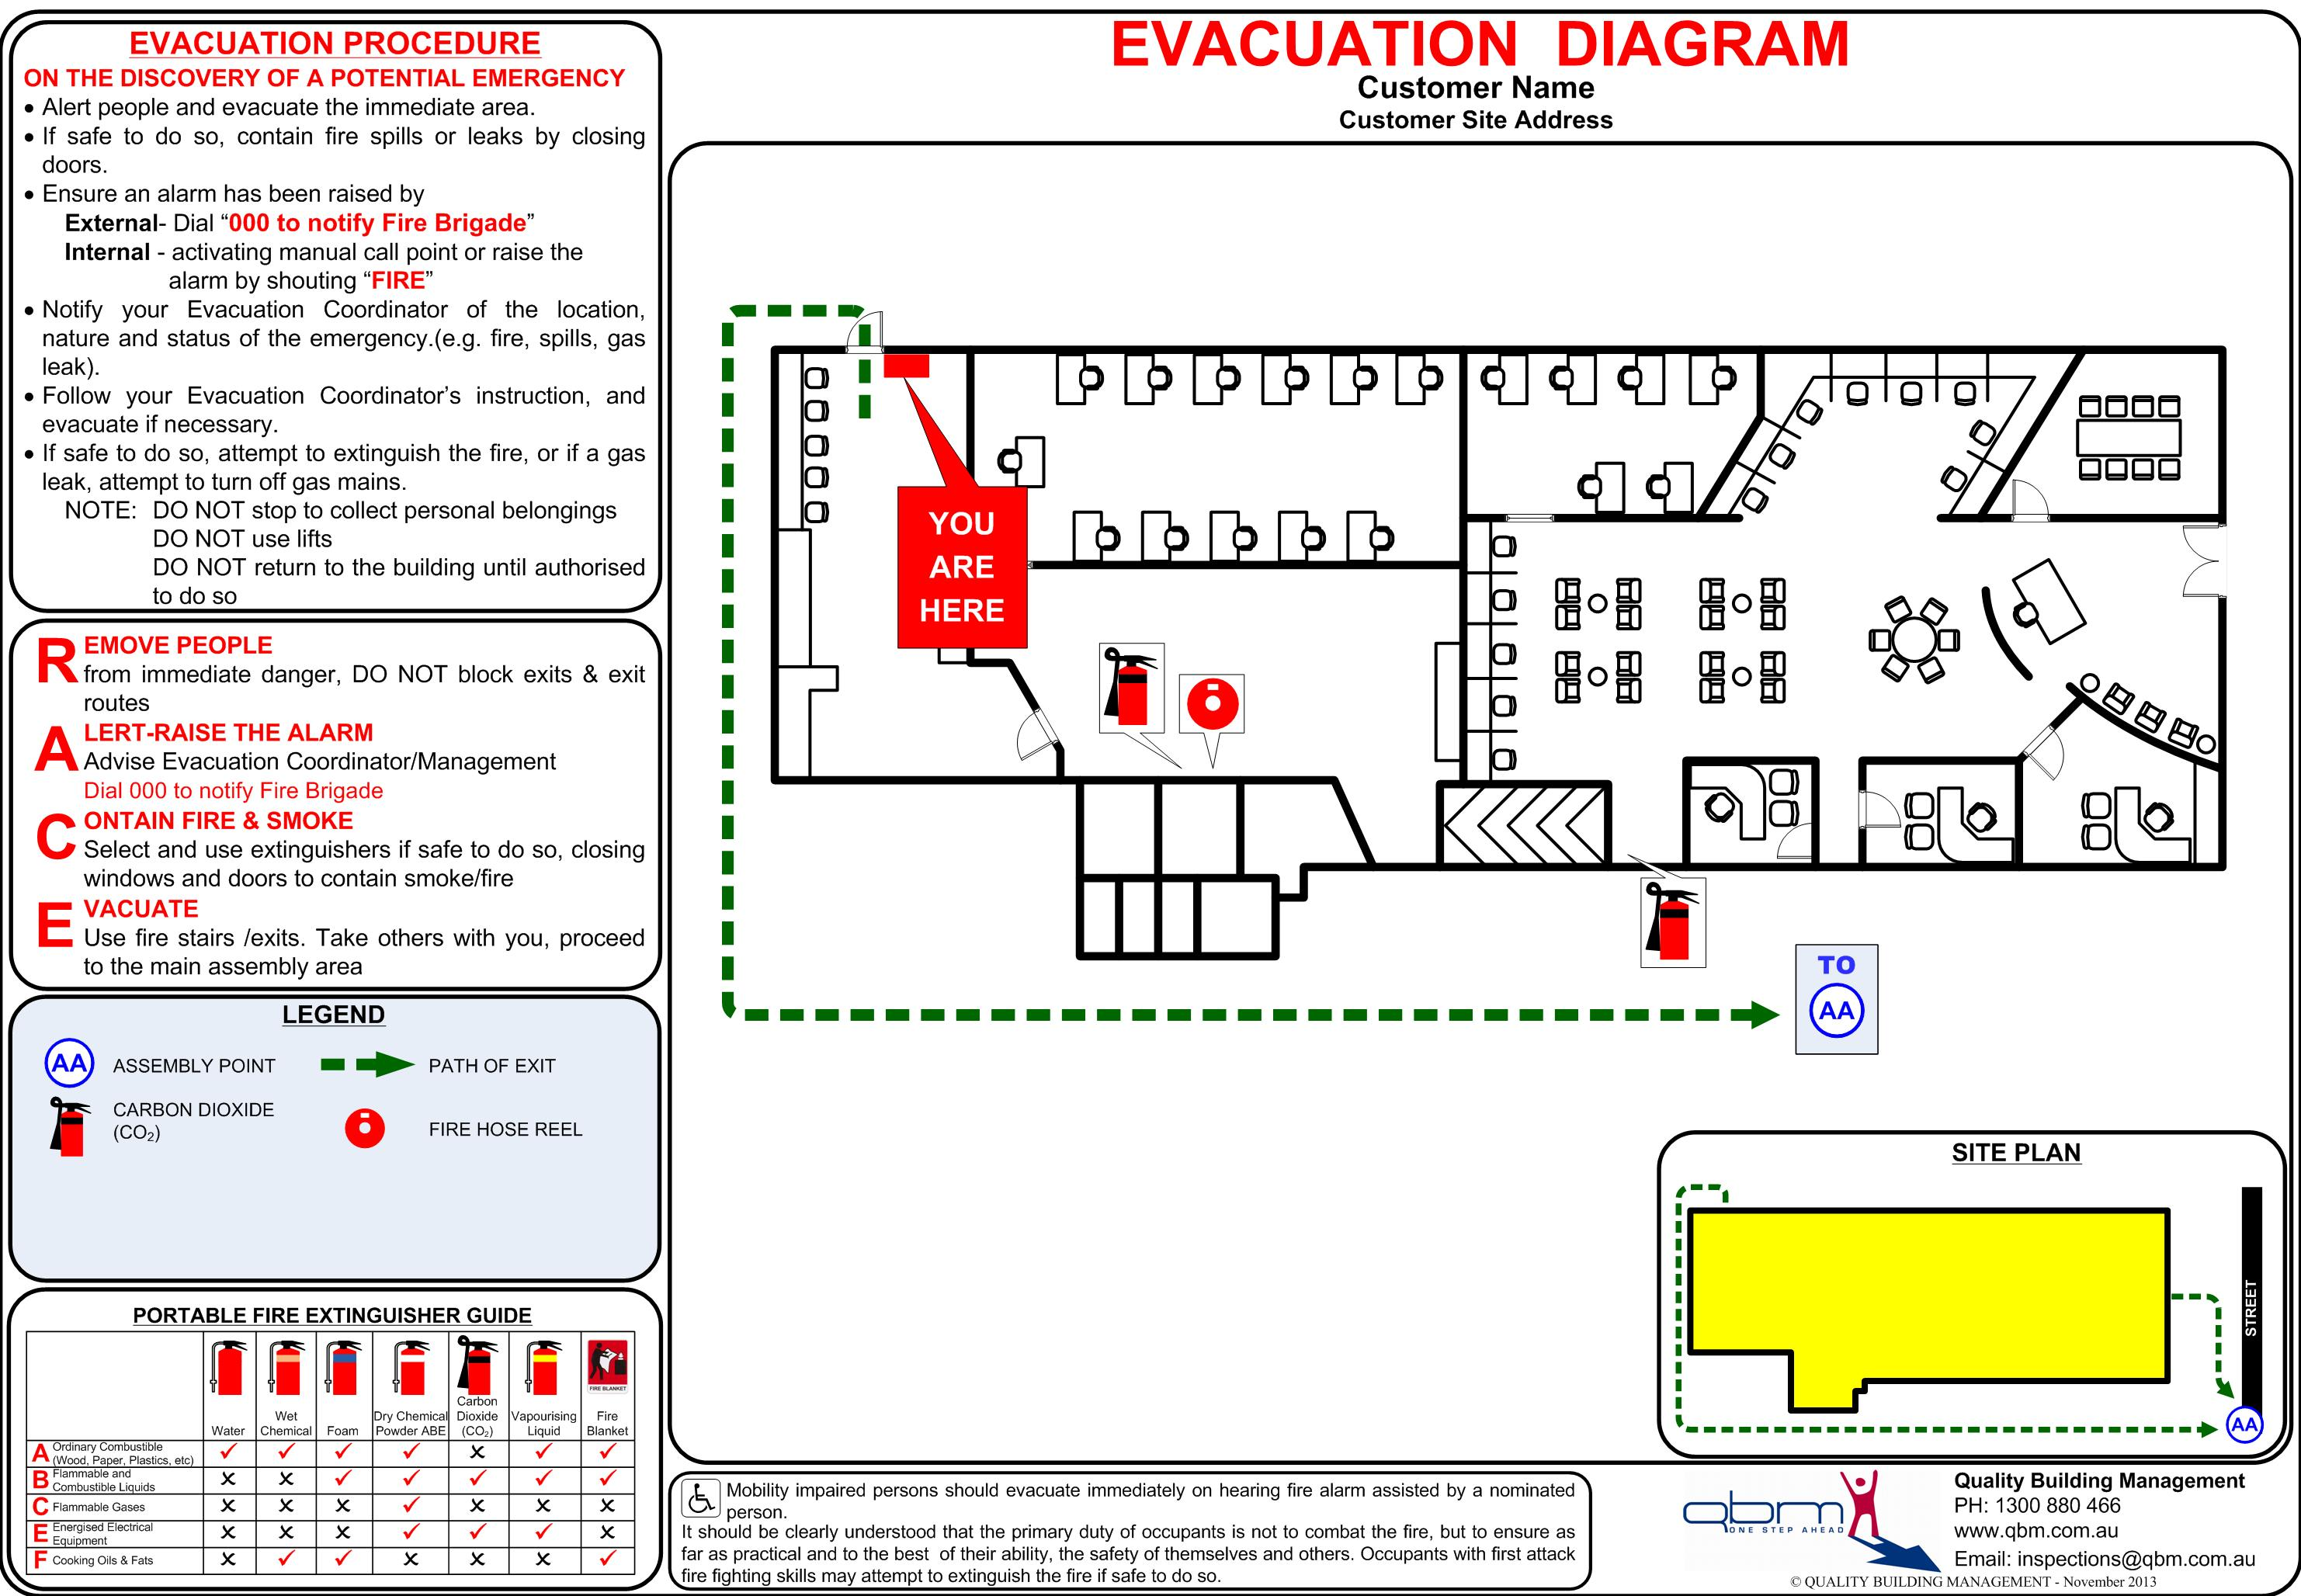 Emergency evacuation diagrams qbm compliance reporting for Fire evacuation plan template nsw